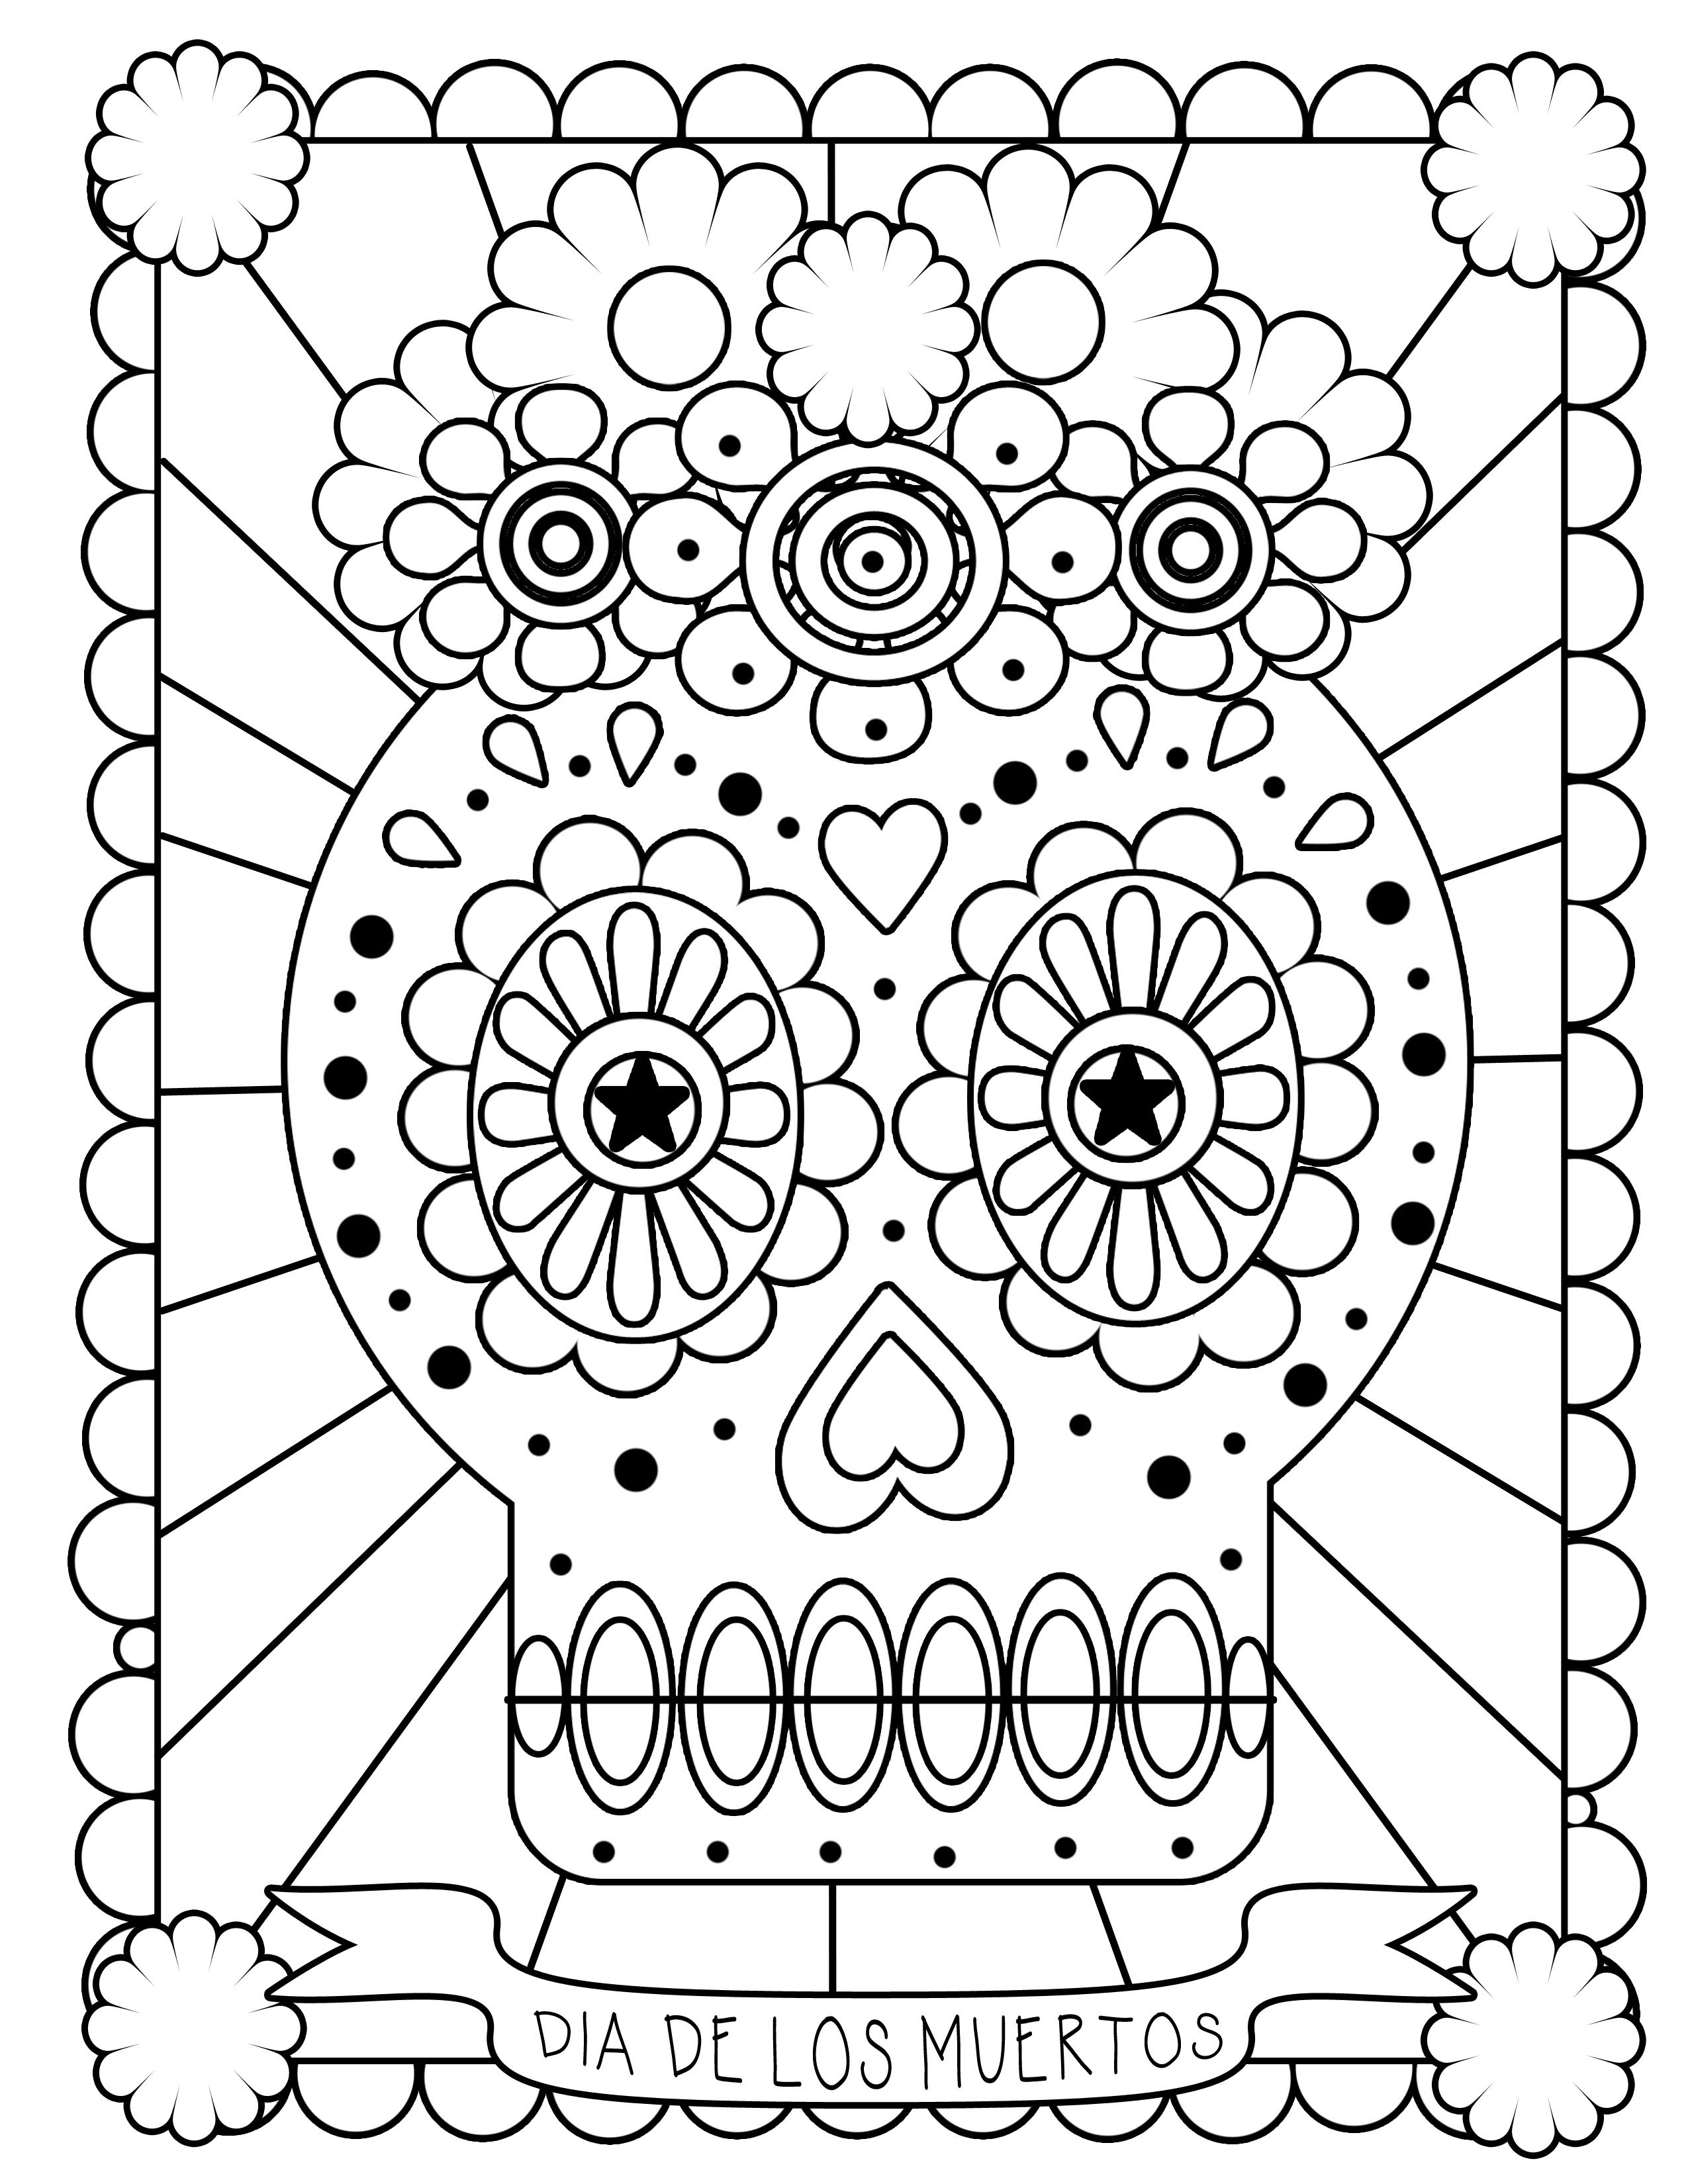 coloring printable day of the dead free printable day of the dead coloring pages best printable of day coloring dead the